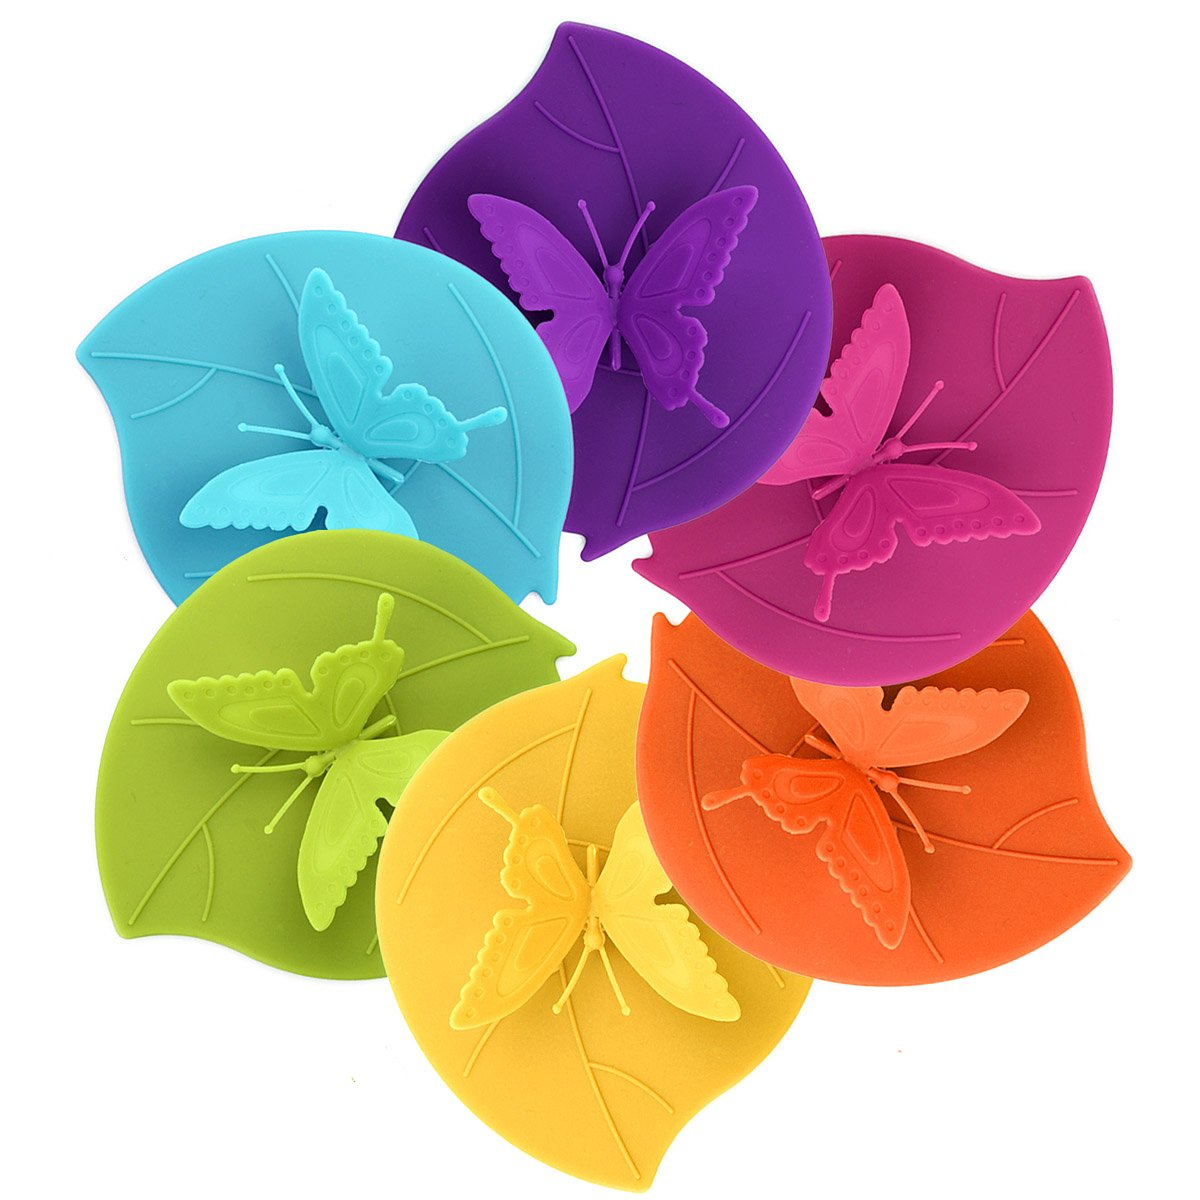 Silicone Cup Lids - Creative Butterfly Mug Cover From ME.FAN - Anti-dust Airtight Seal Silicone Drink Cup Lids - Hot Cup Lids 6 Set In Bright Colors by ME.FAN